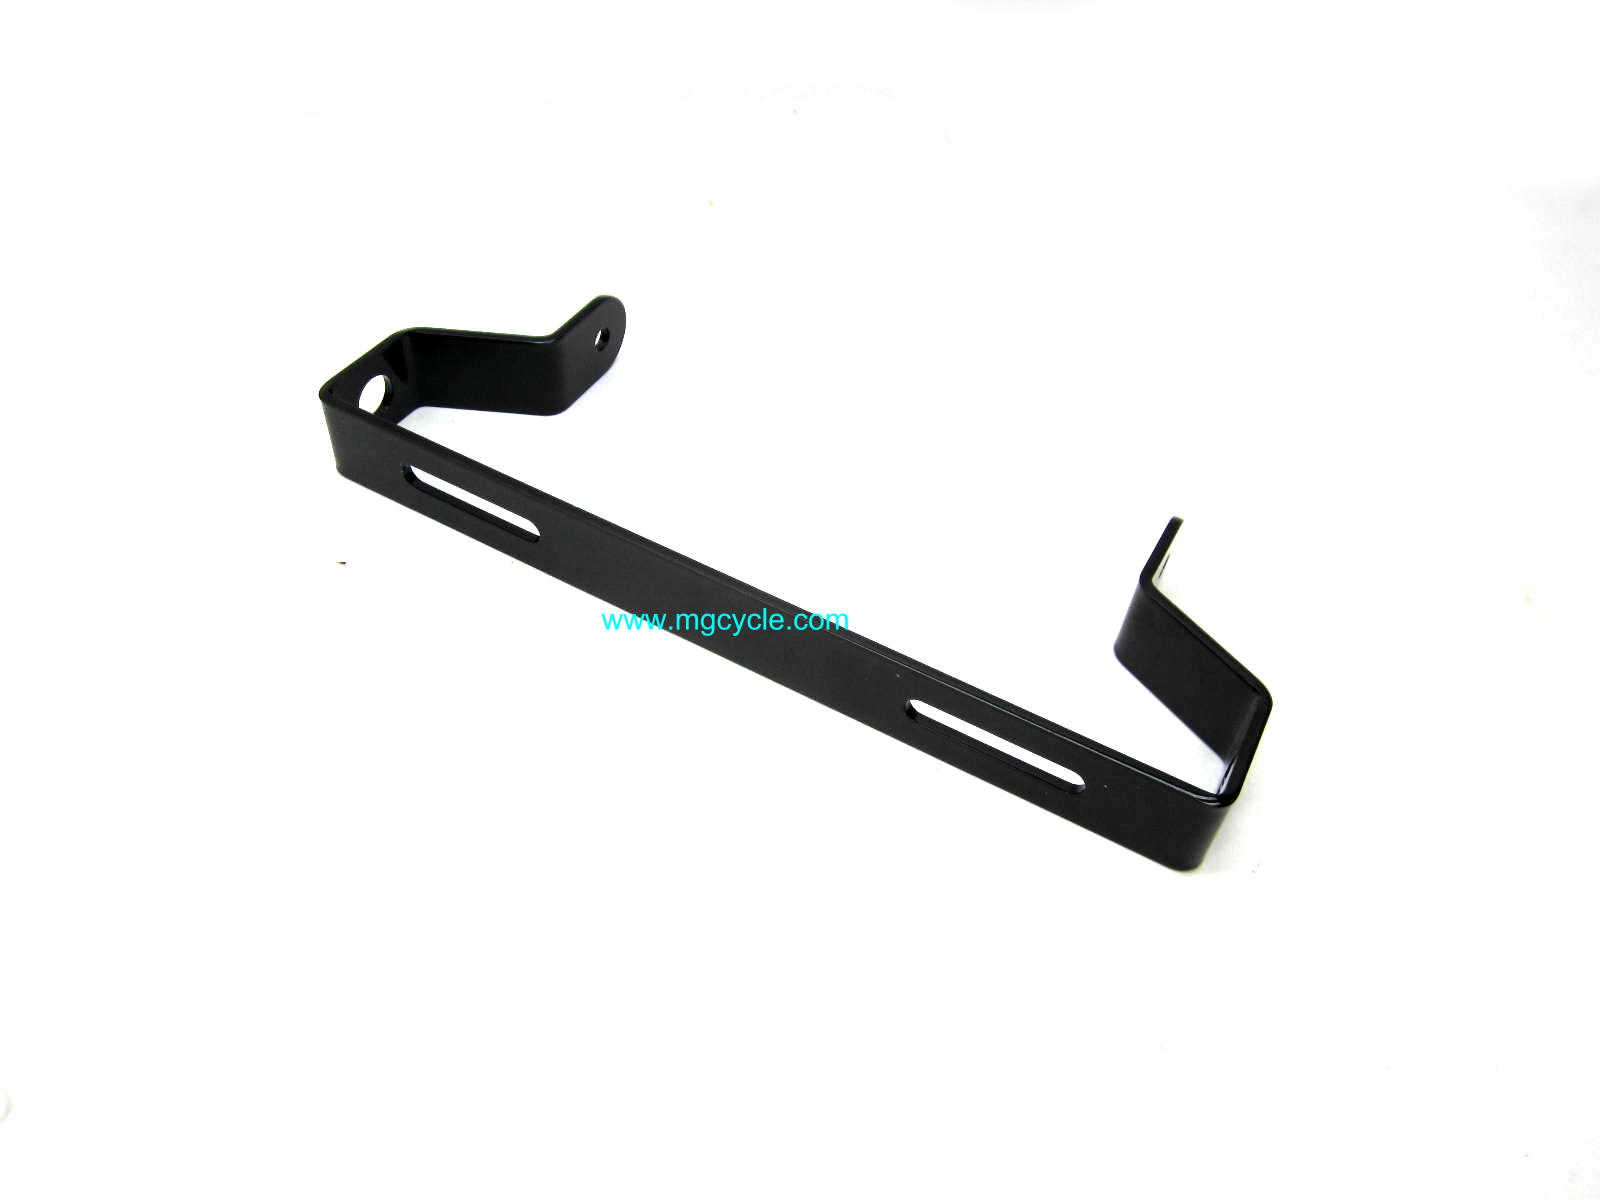 rear turn signal mounting bracket, black powdercoat